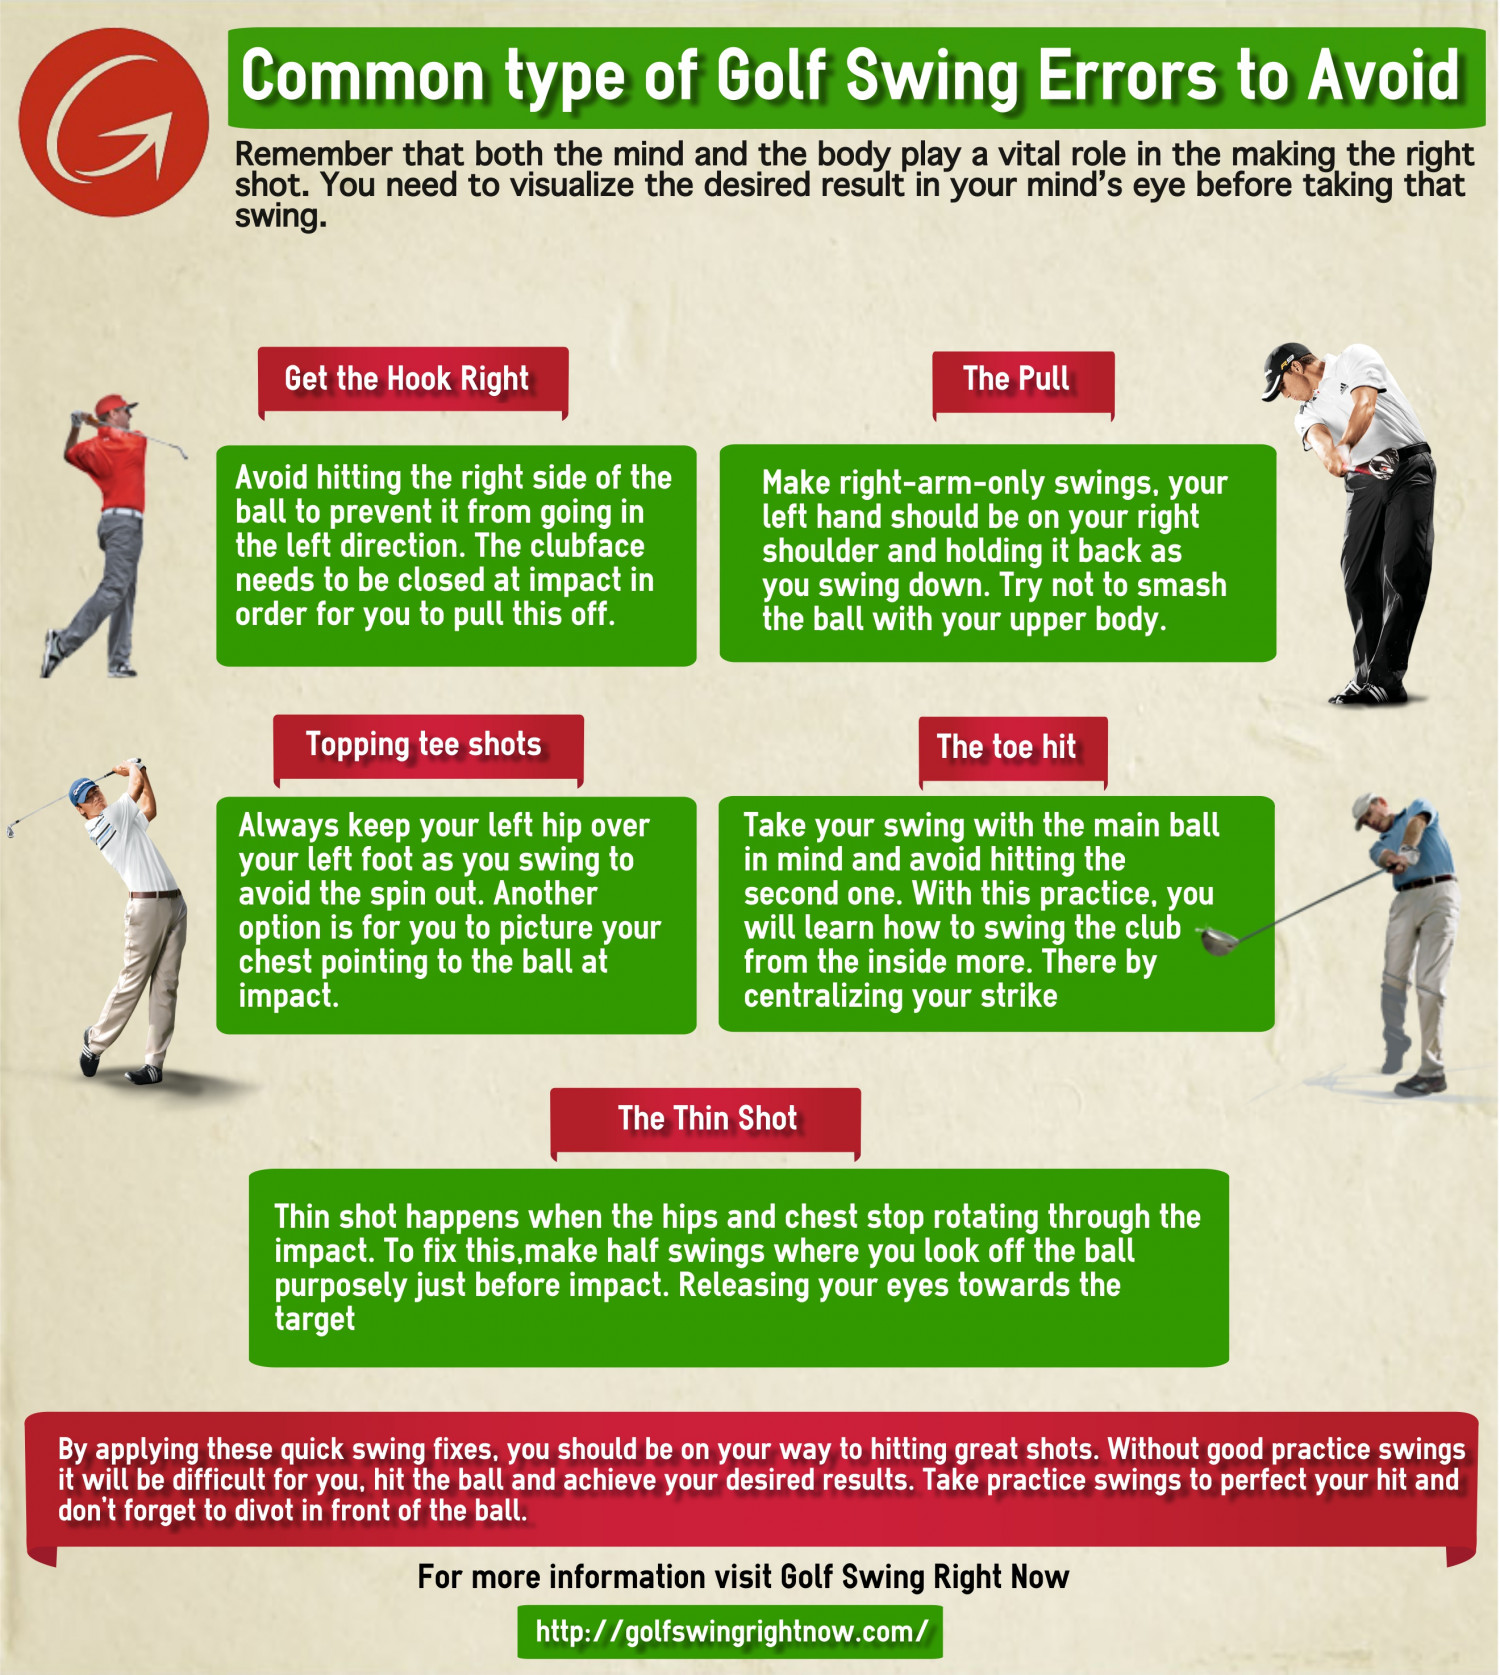 Common Types of Golf Swing Errors to Avoid Infographic